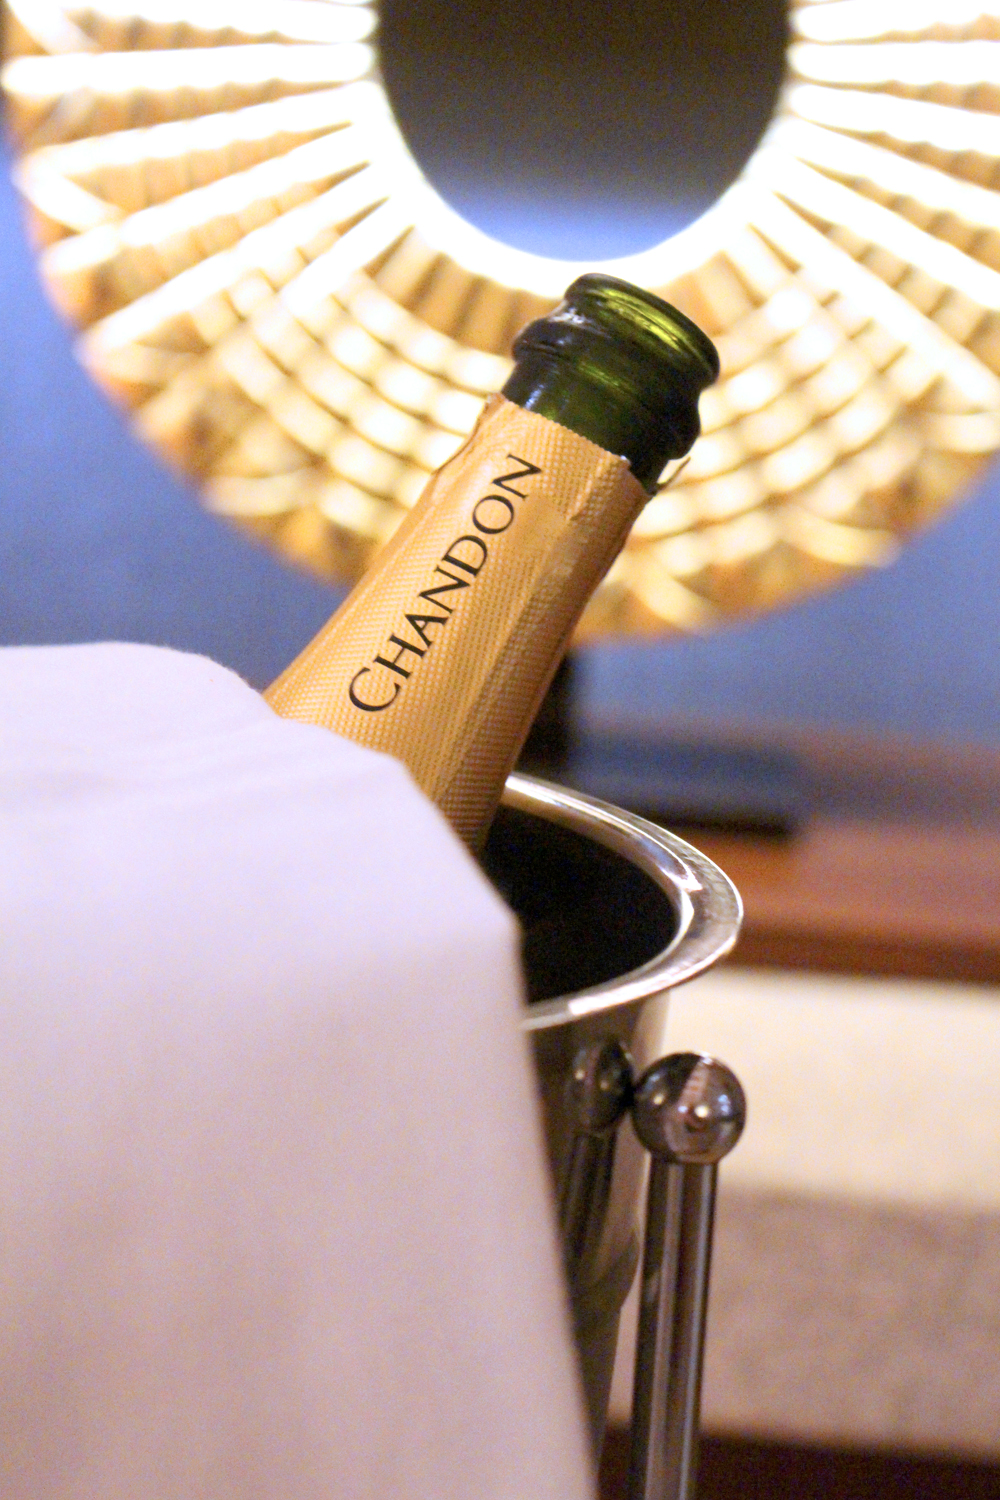 Chandon sparkling wine at Sumaq, Aguas Calientes, Peru - lifestyle & travel blog